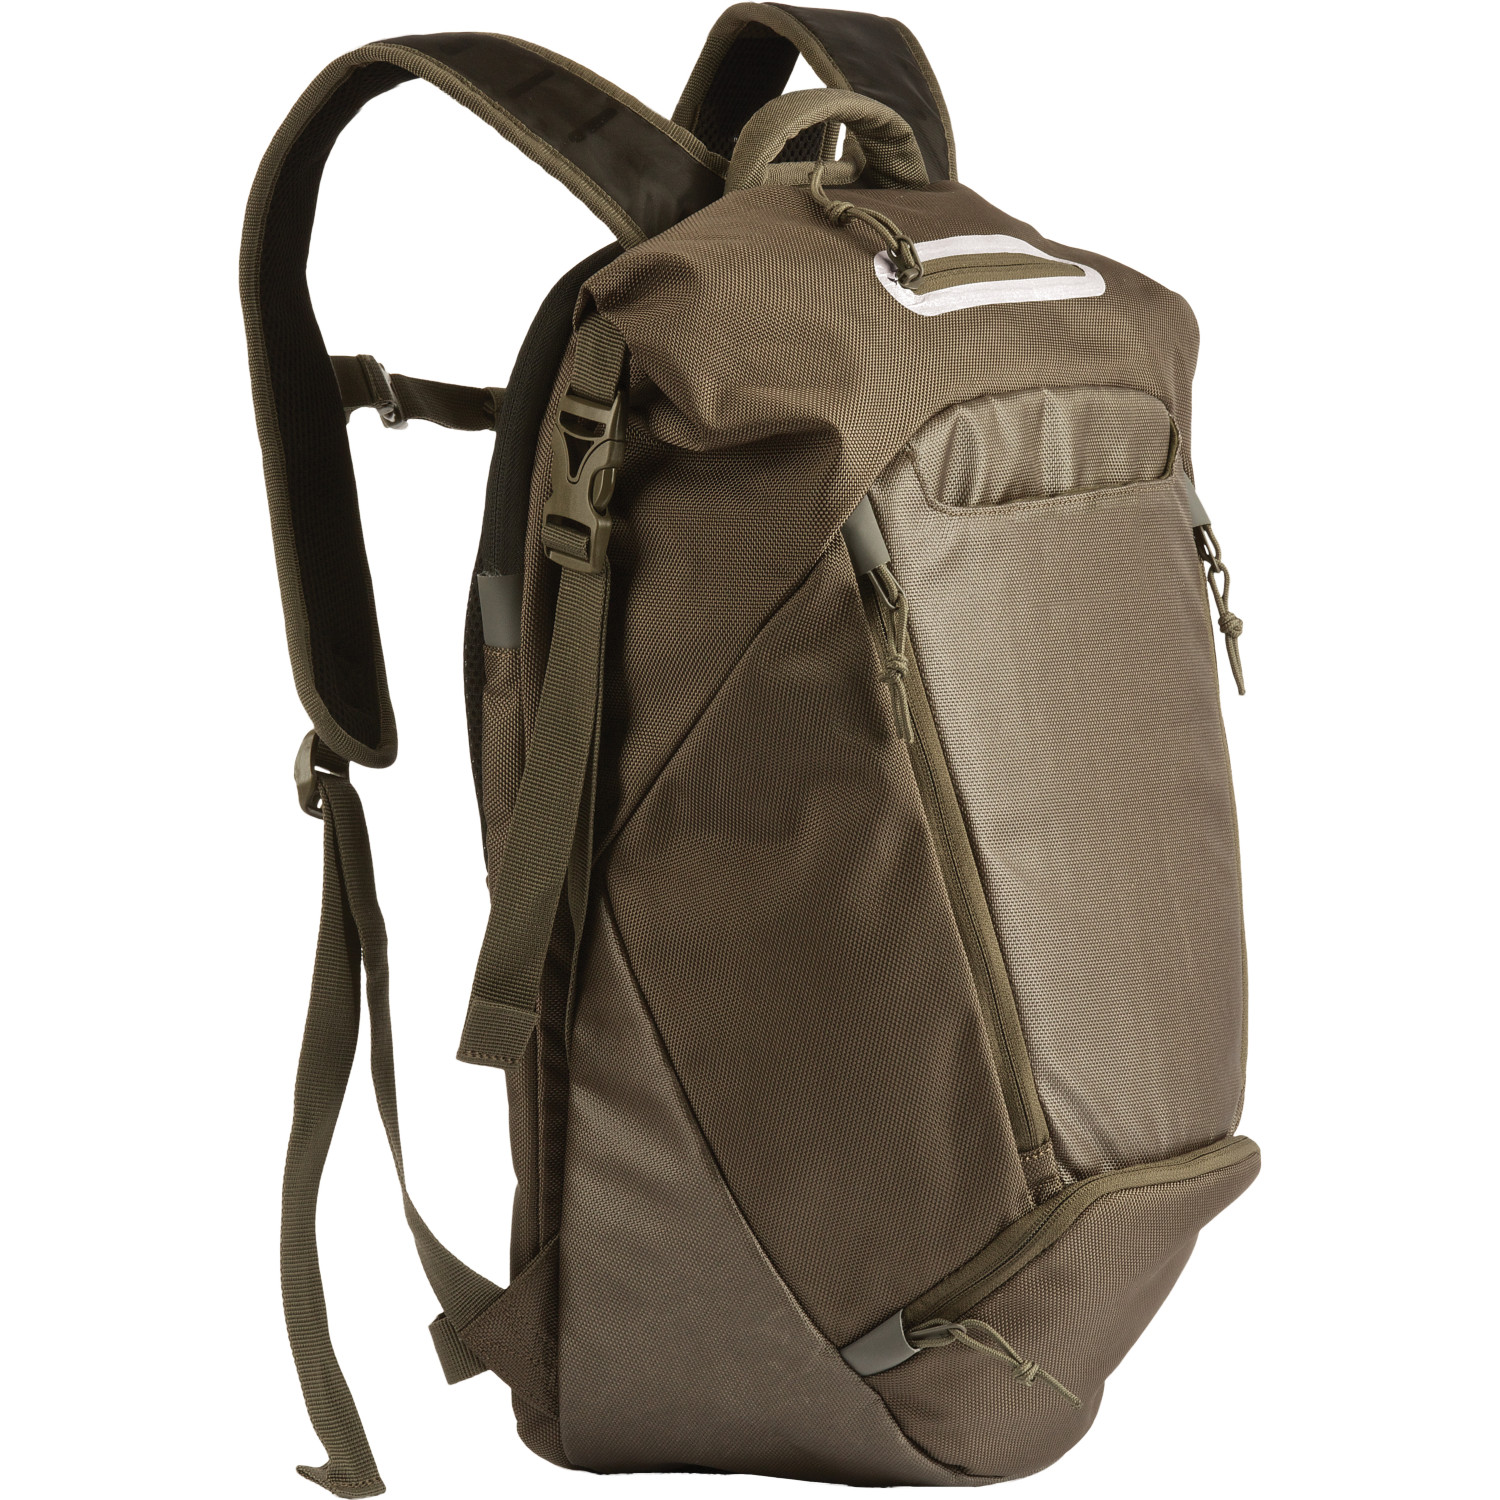 5.11 Tactical Covrt Boxpack Bag from Nightgear UK